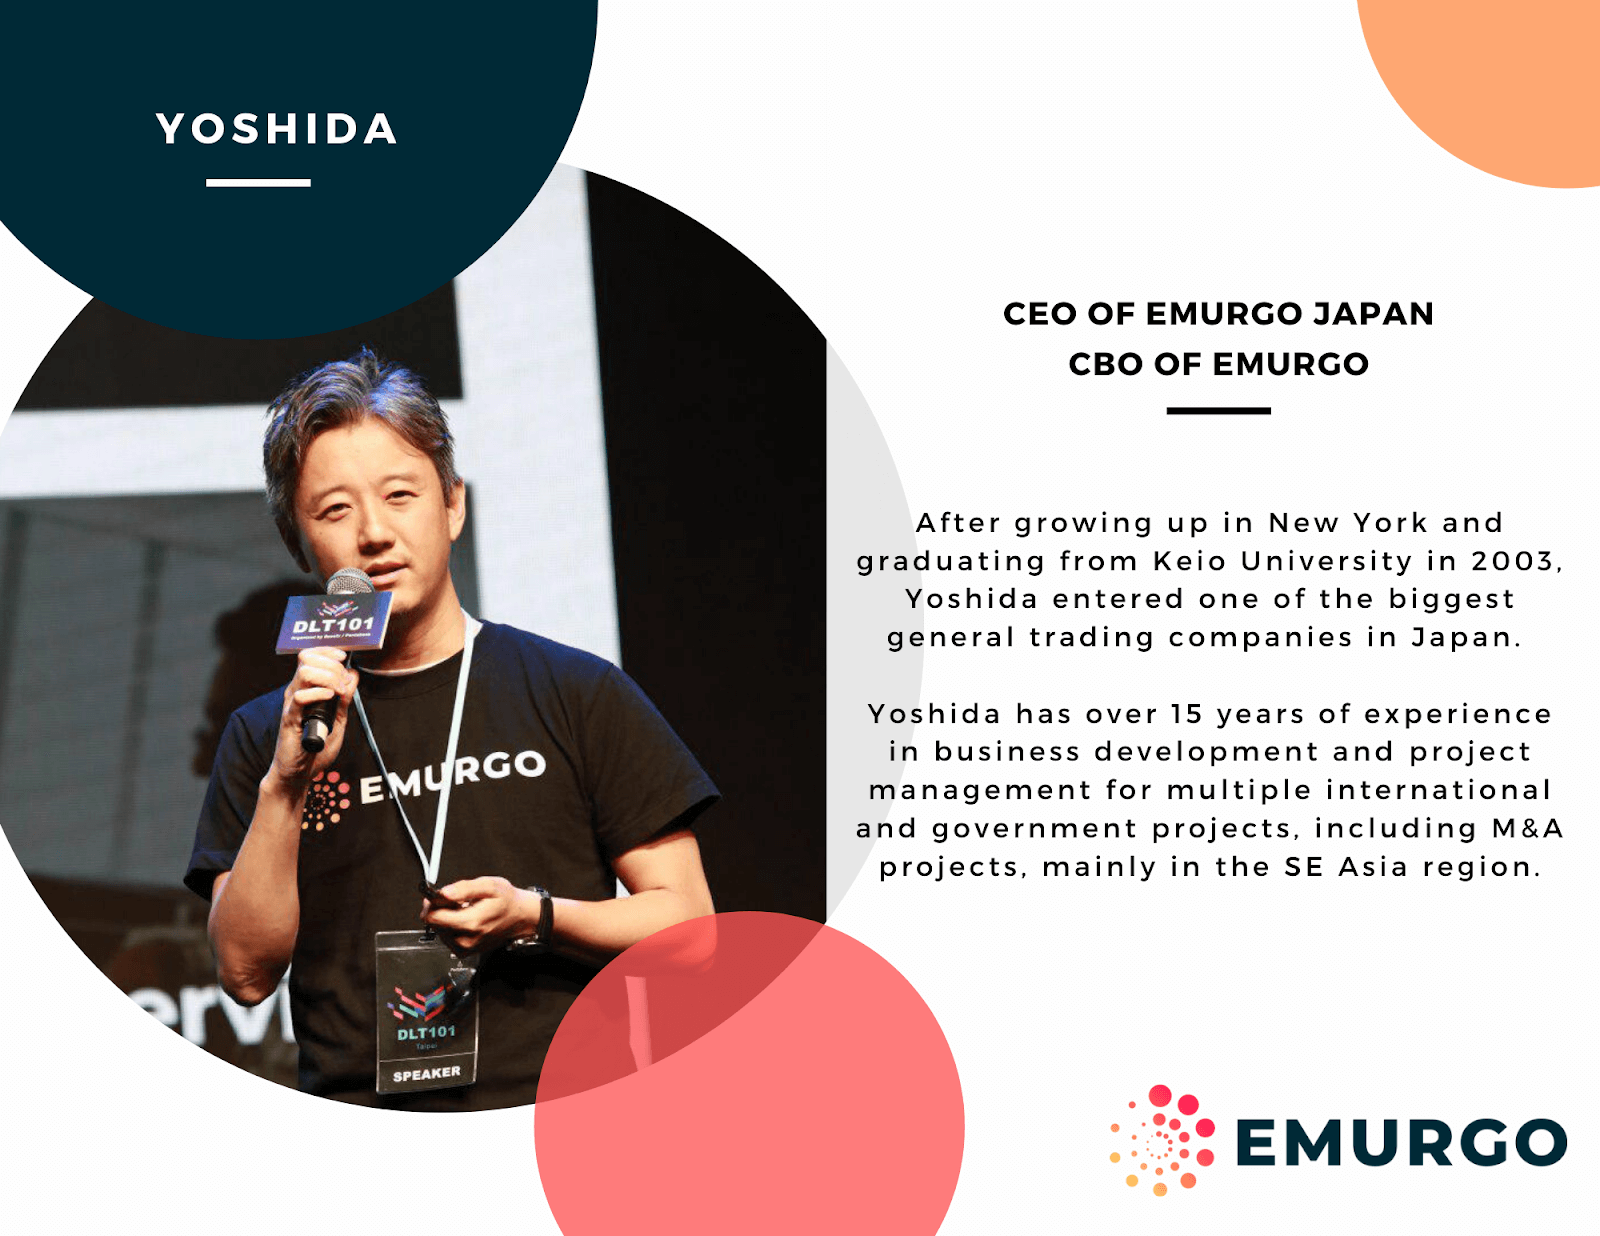 Meet Yoshida, Building a Global Cardano as Chief Executive Officer EMURGO Japan & Chief Business Officer EMURGO Group